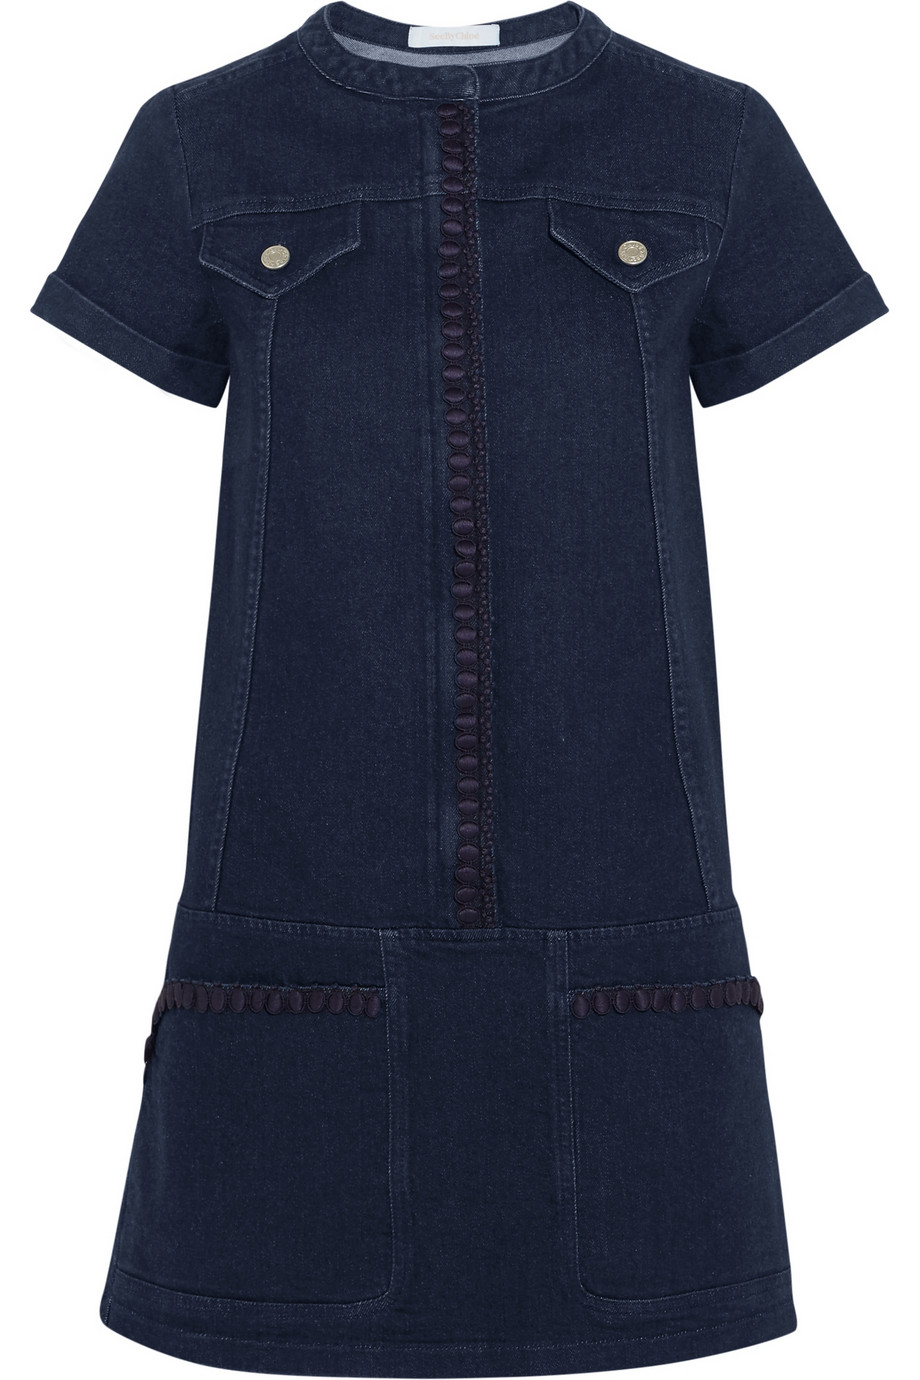 Little Blue Dress Chloe Blue Denim